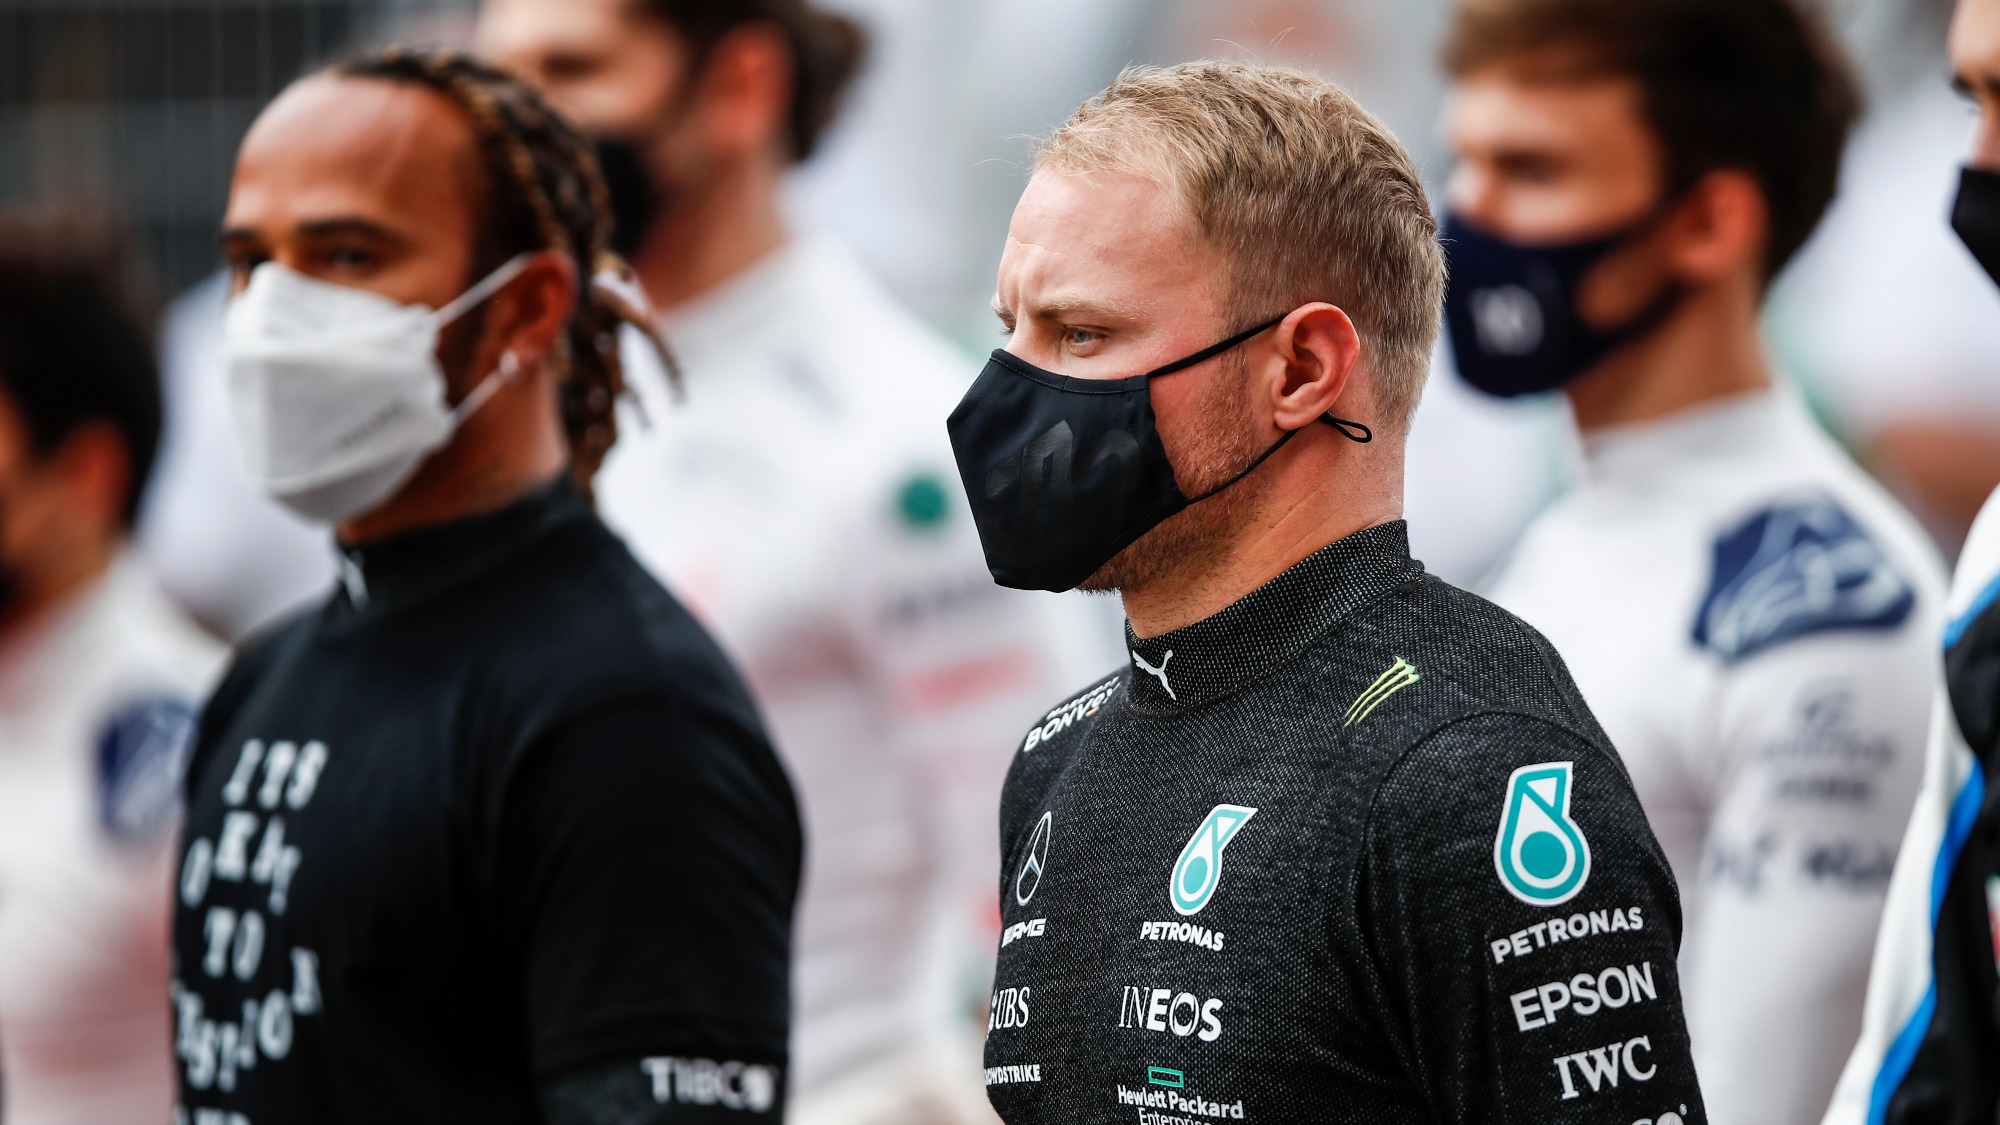 Bottas and Perez still pivotal to the F1 story in 2021